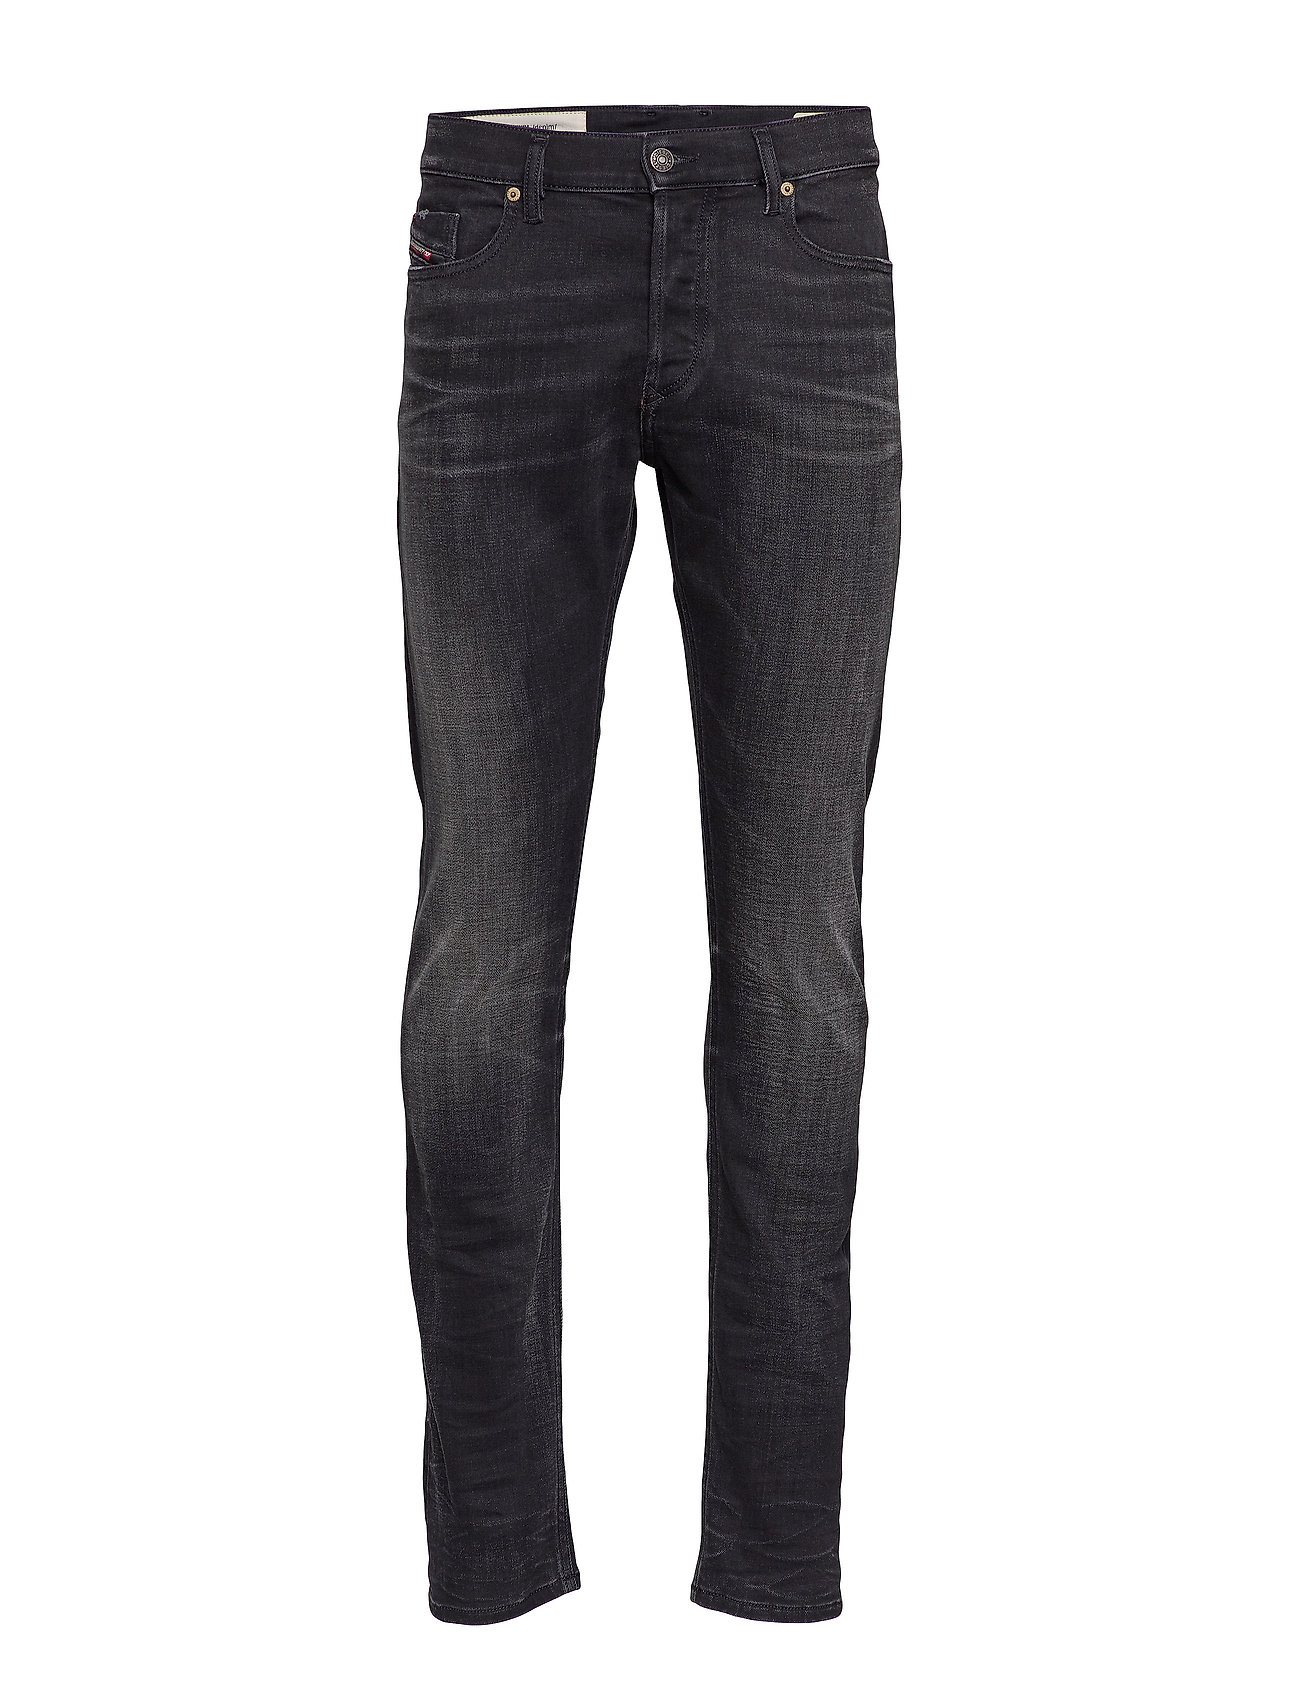 Diesel Men TEPPHAR-X L.34 TROUSERS - BLACK DENIM